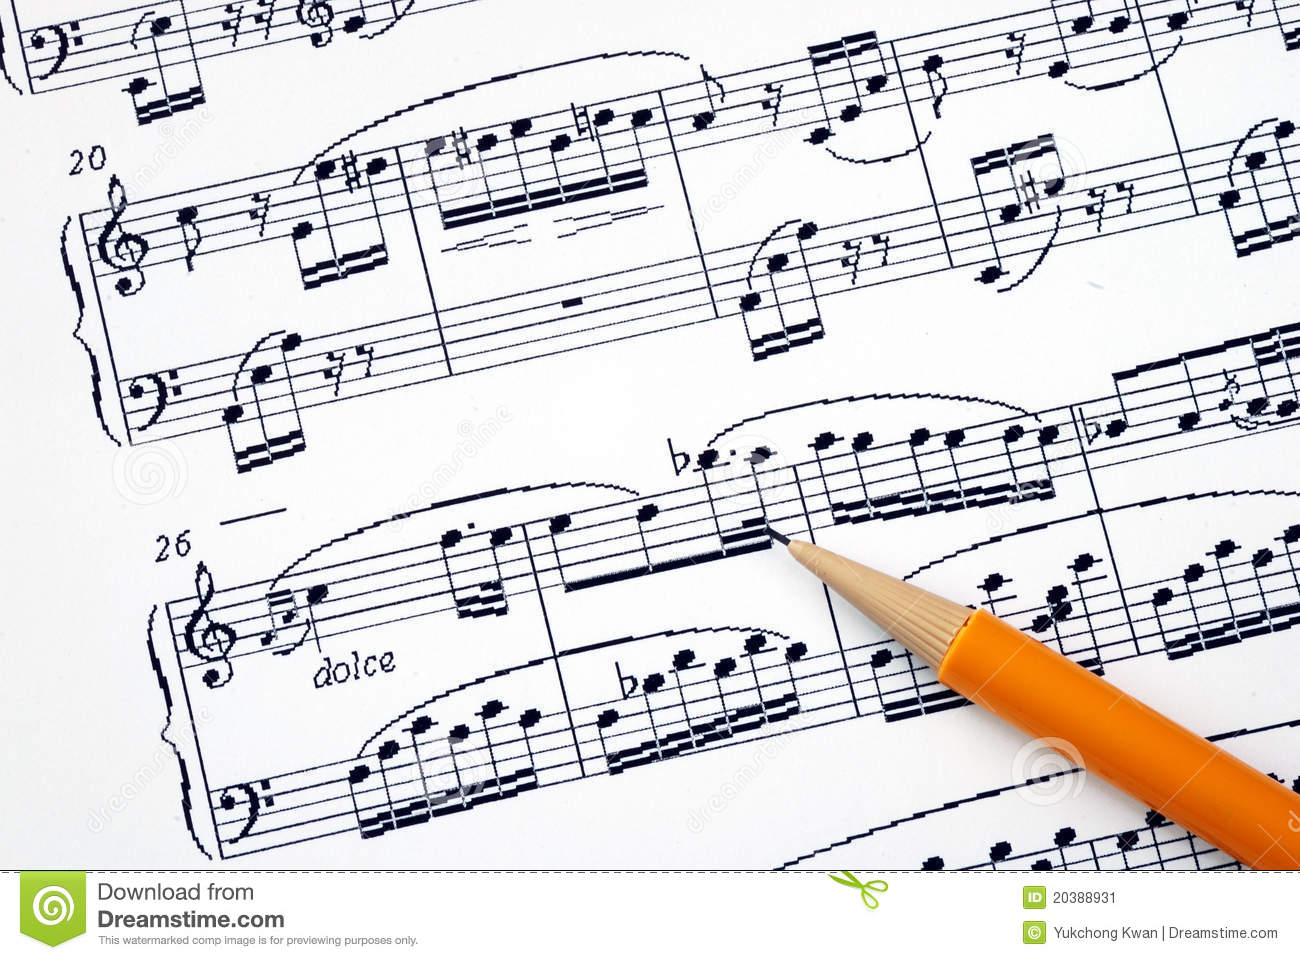 How to Compose a Song for a Band How to Compose a Song for a Band new picture